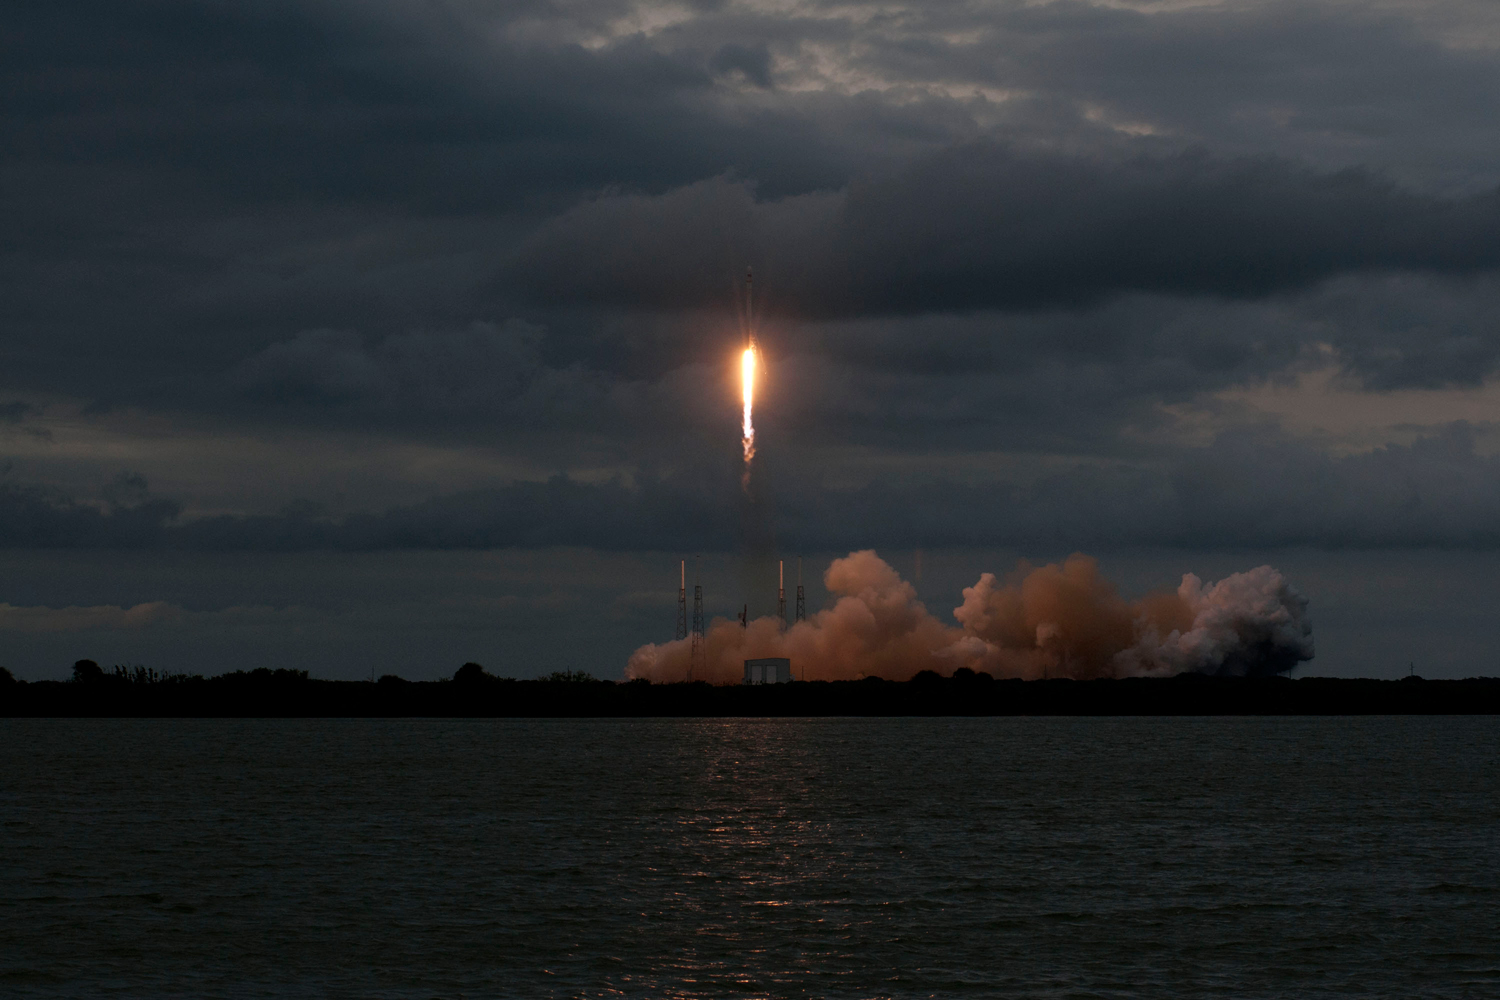 SpaceX's Falcon 9 launches with Thailand's Thaicom 6 satellite aboard, on Jan. 6, 2014 from Cape Canaveral